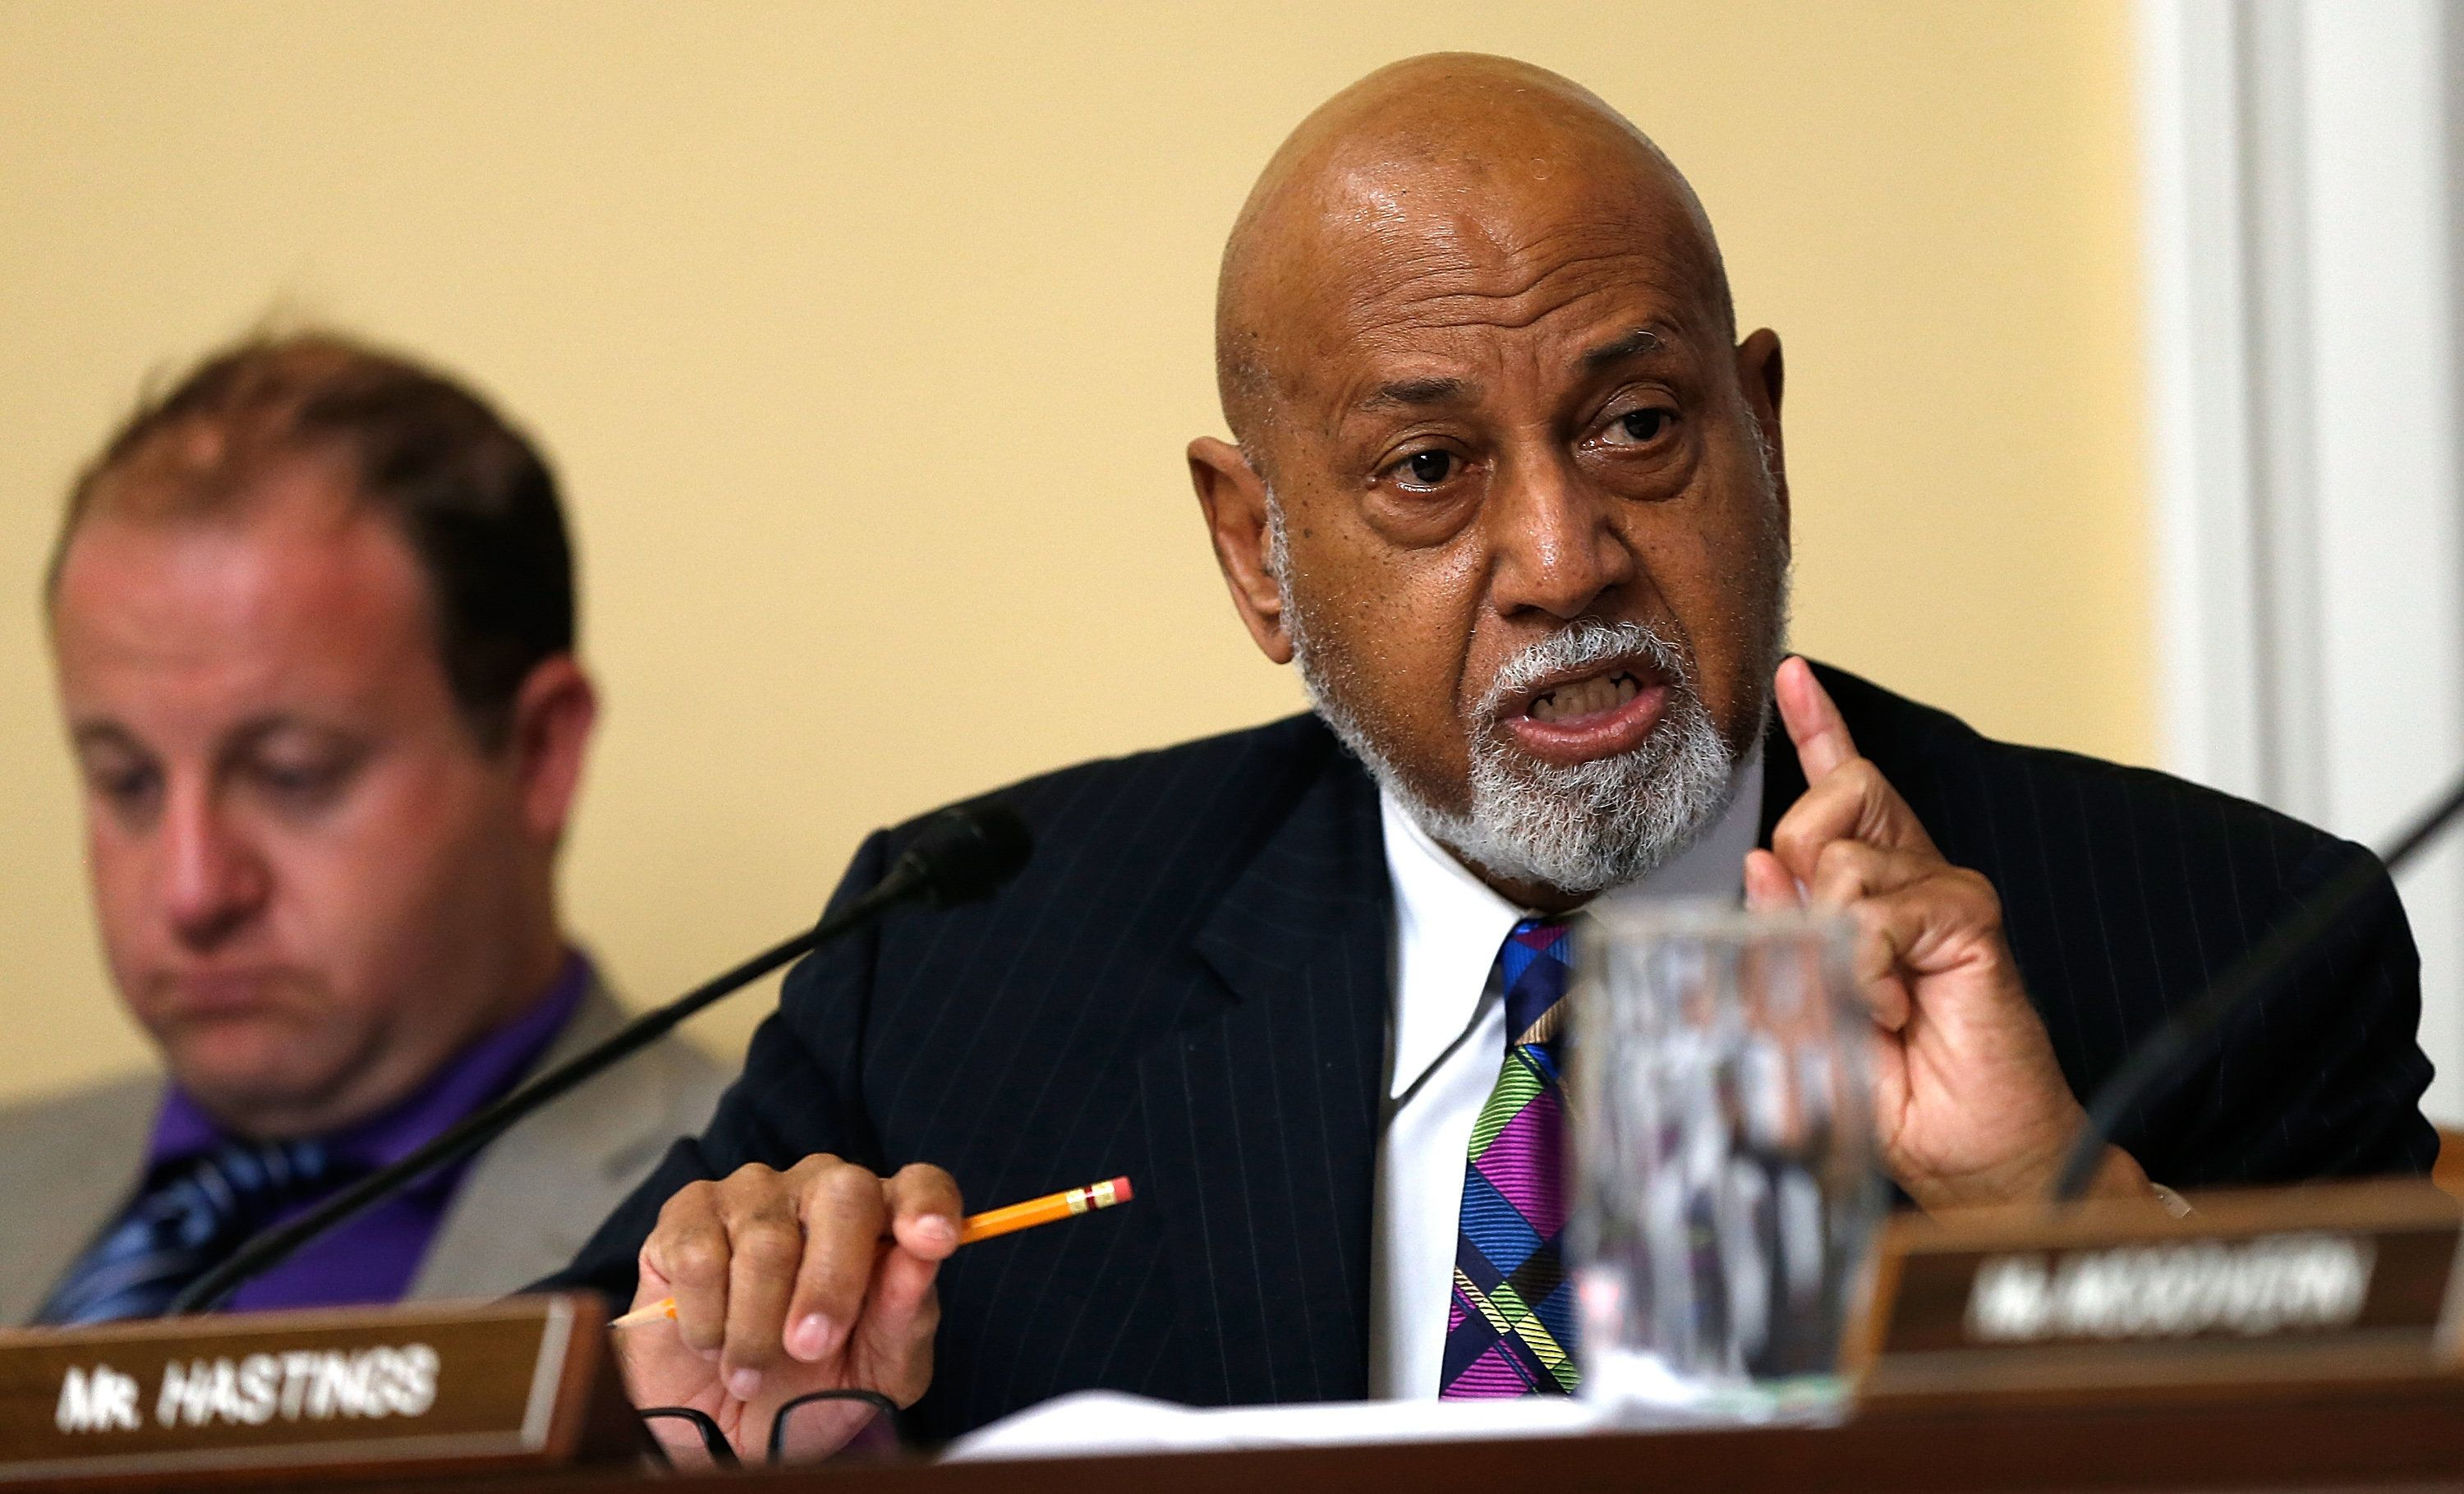 WASHINGTON, DC - JULY 29:  Rep. Alcee Hastings (D-FL) speaks during a debate at a committee meeting July 29, 2014 at the U.S. Capitol in Washington, DC. The committee met to formulate a rule on providing the authority to begin litigation for actions by the President or other executive branch officials inconsistent with their duties under the Constitution of the United States. (Photo by Win McNamee/Getty Images)